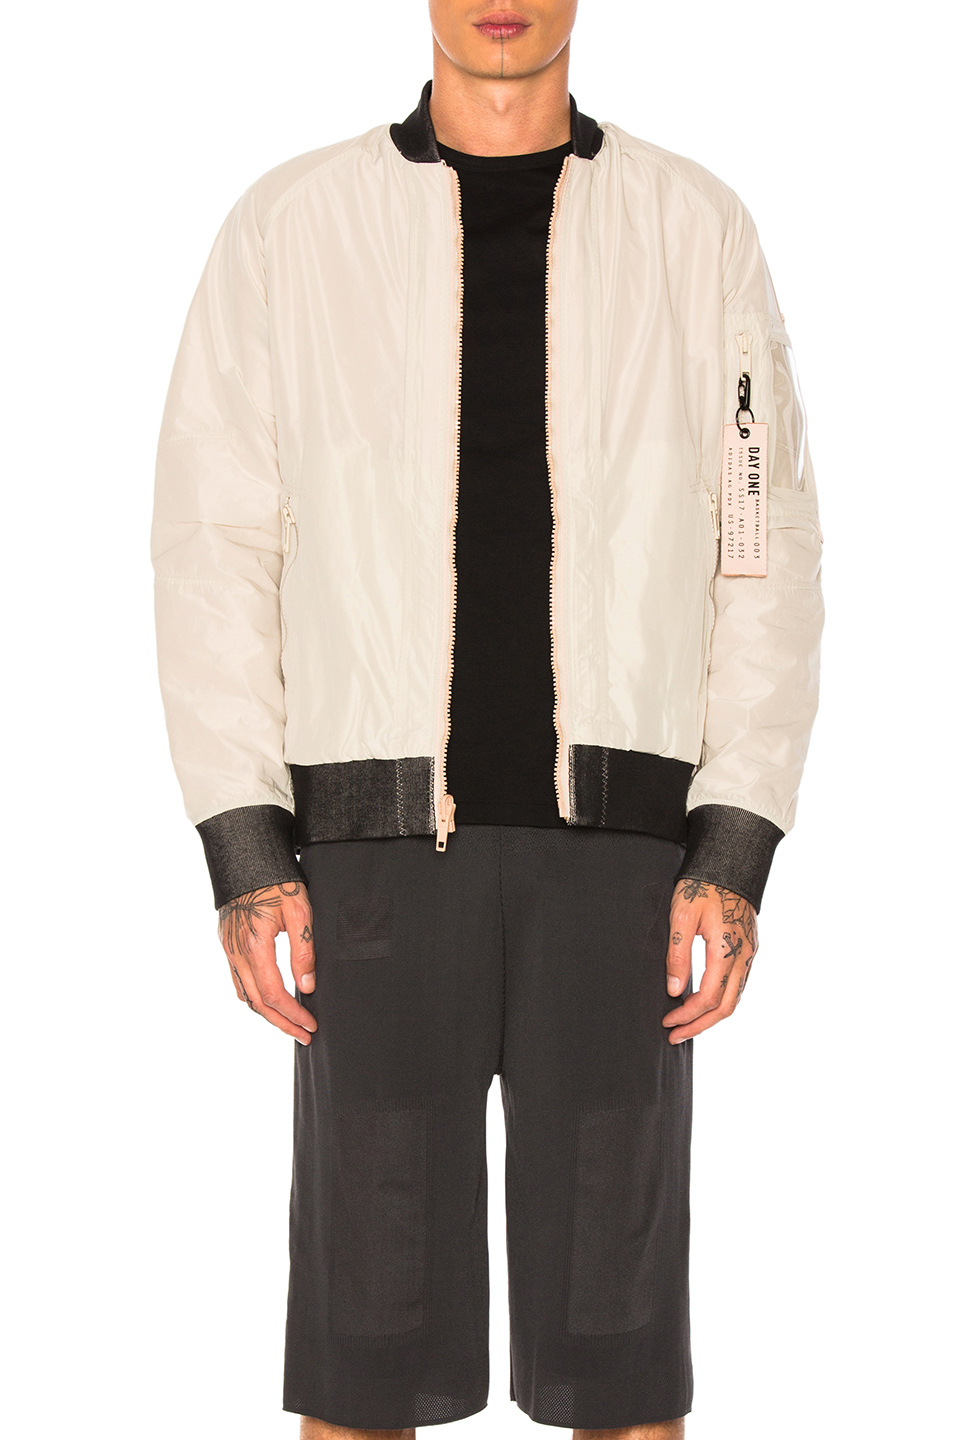 adidas Day One Reversible Bomber in Gray,Neutrals